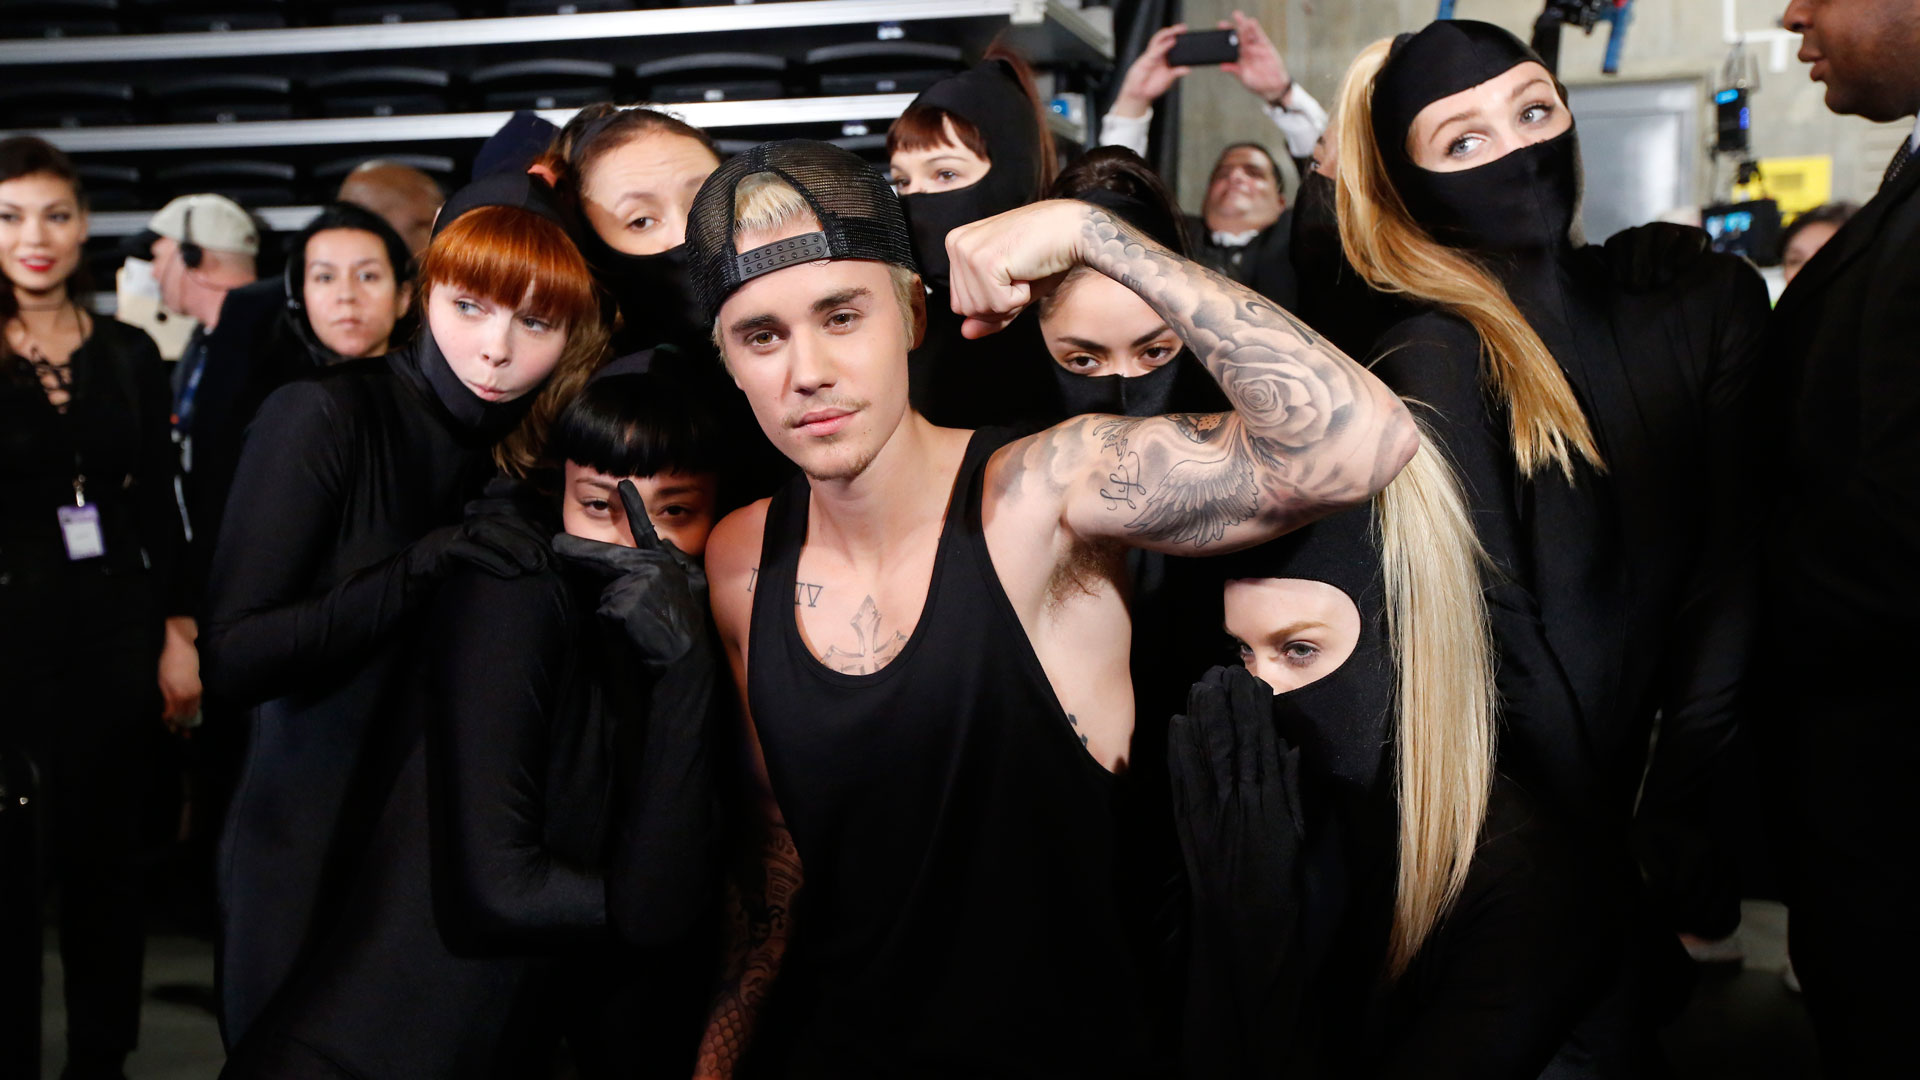 We'll take two tickets to the gun show, Justin Bieber